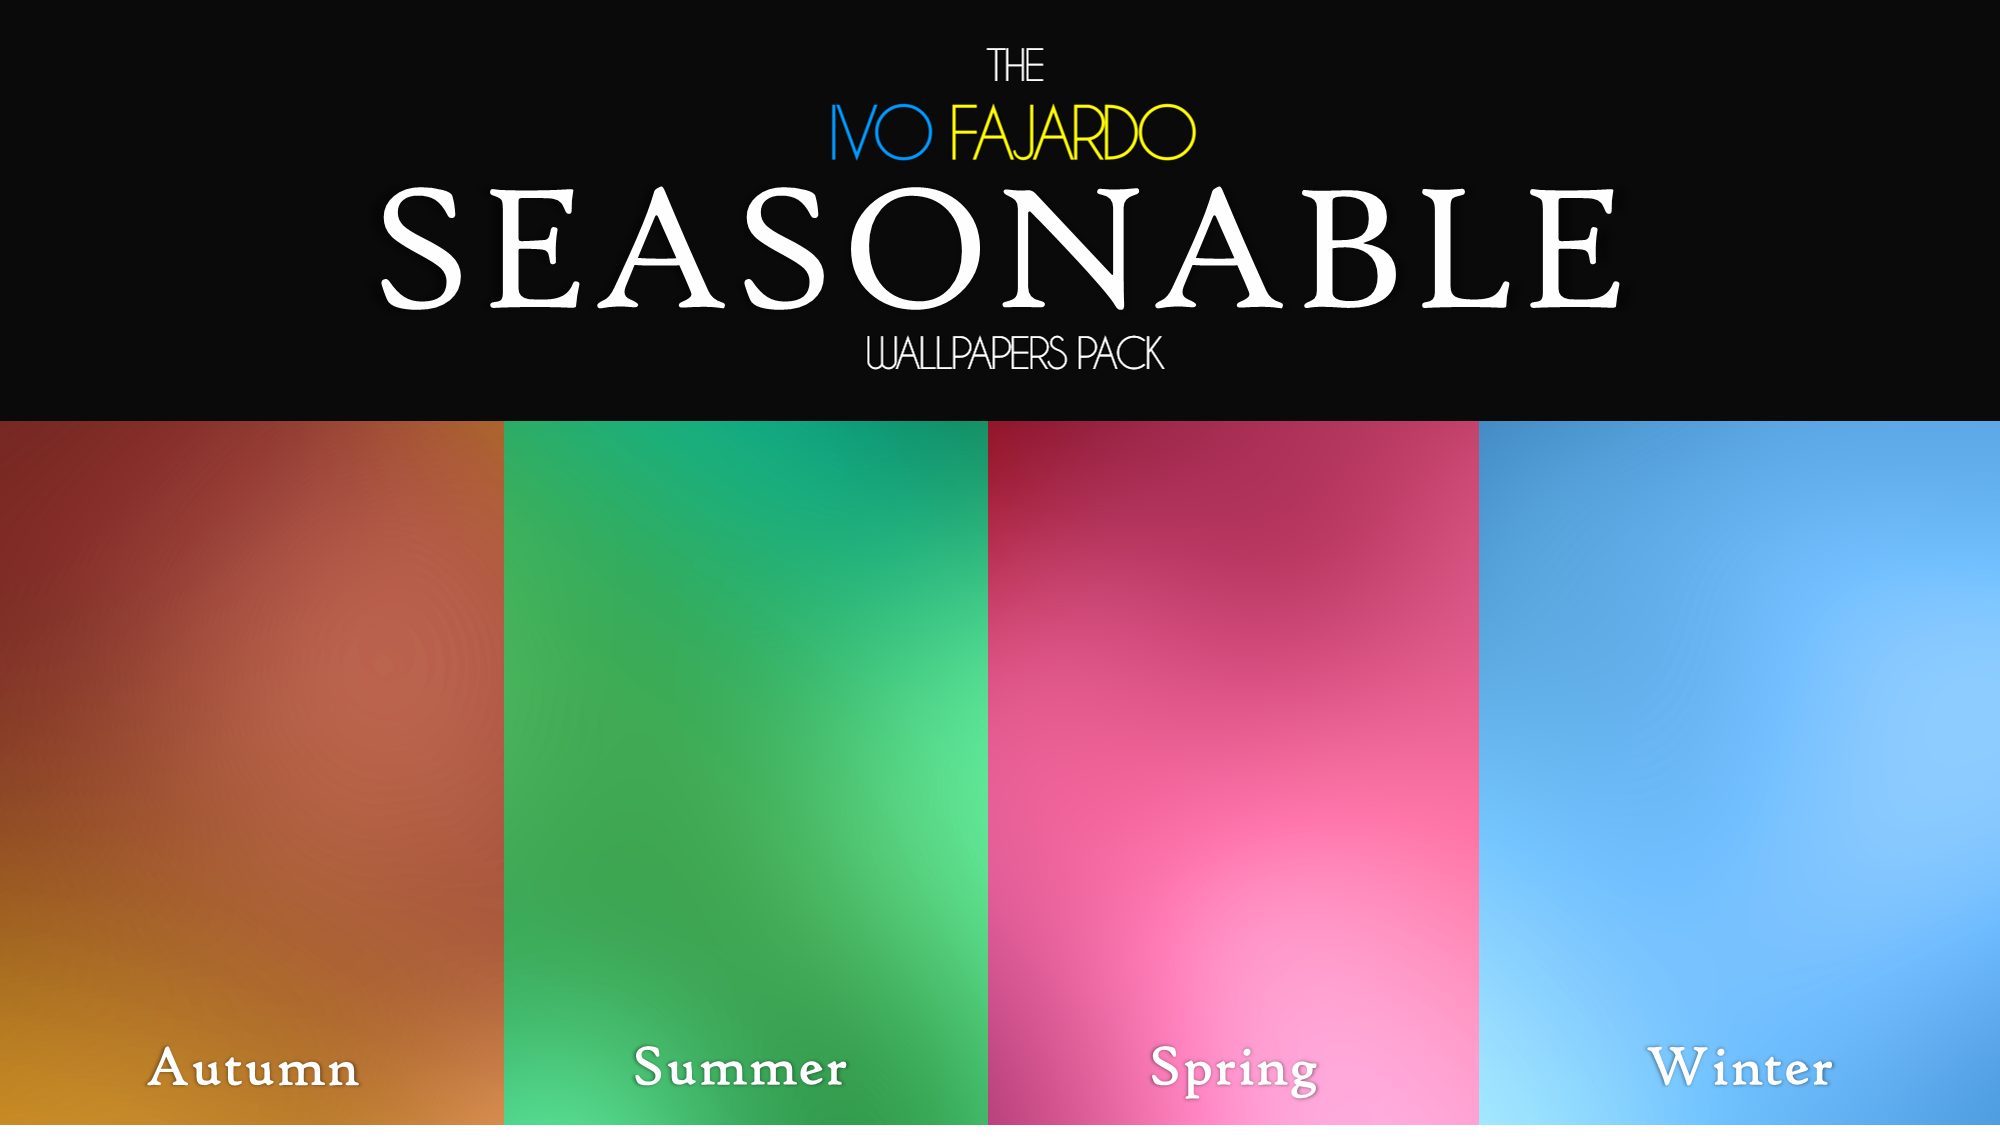 Seasonable Wallpapers Pack by IvoFajardo